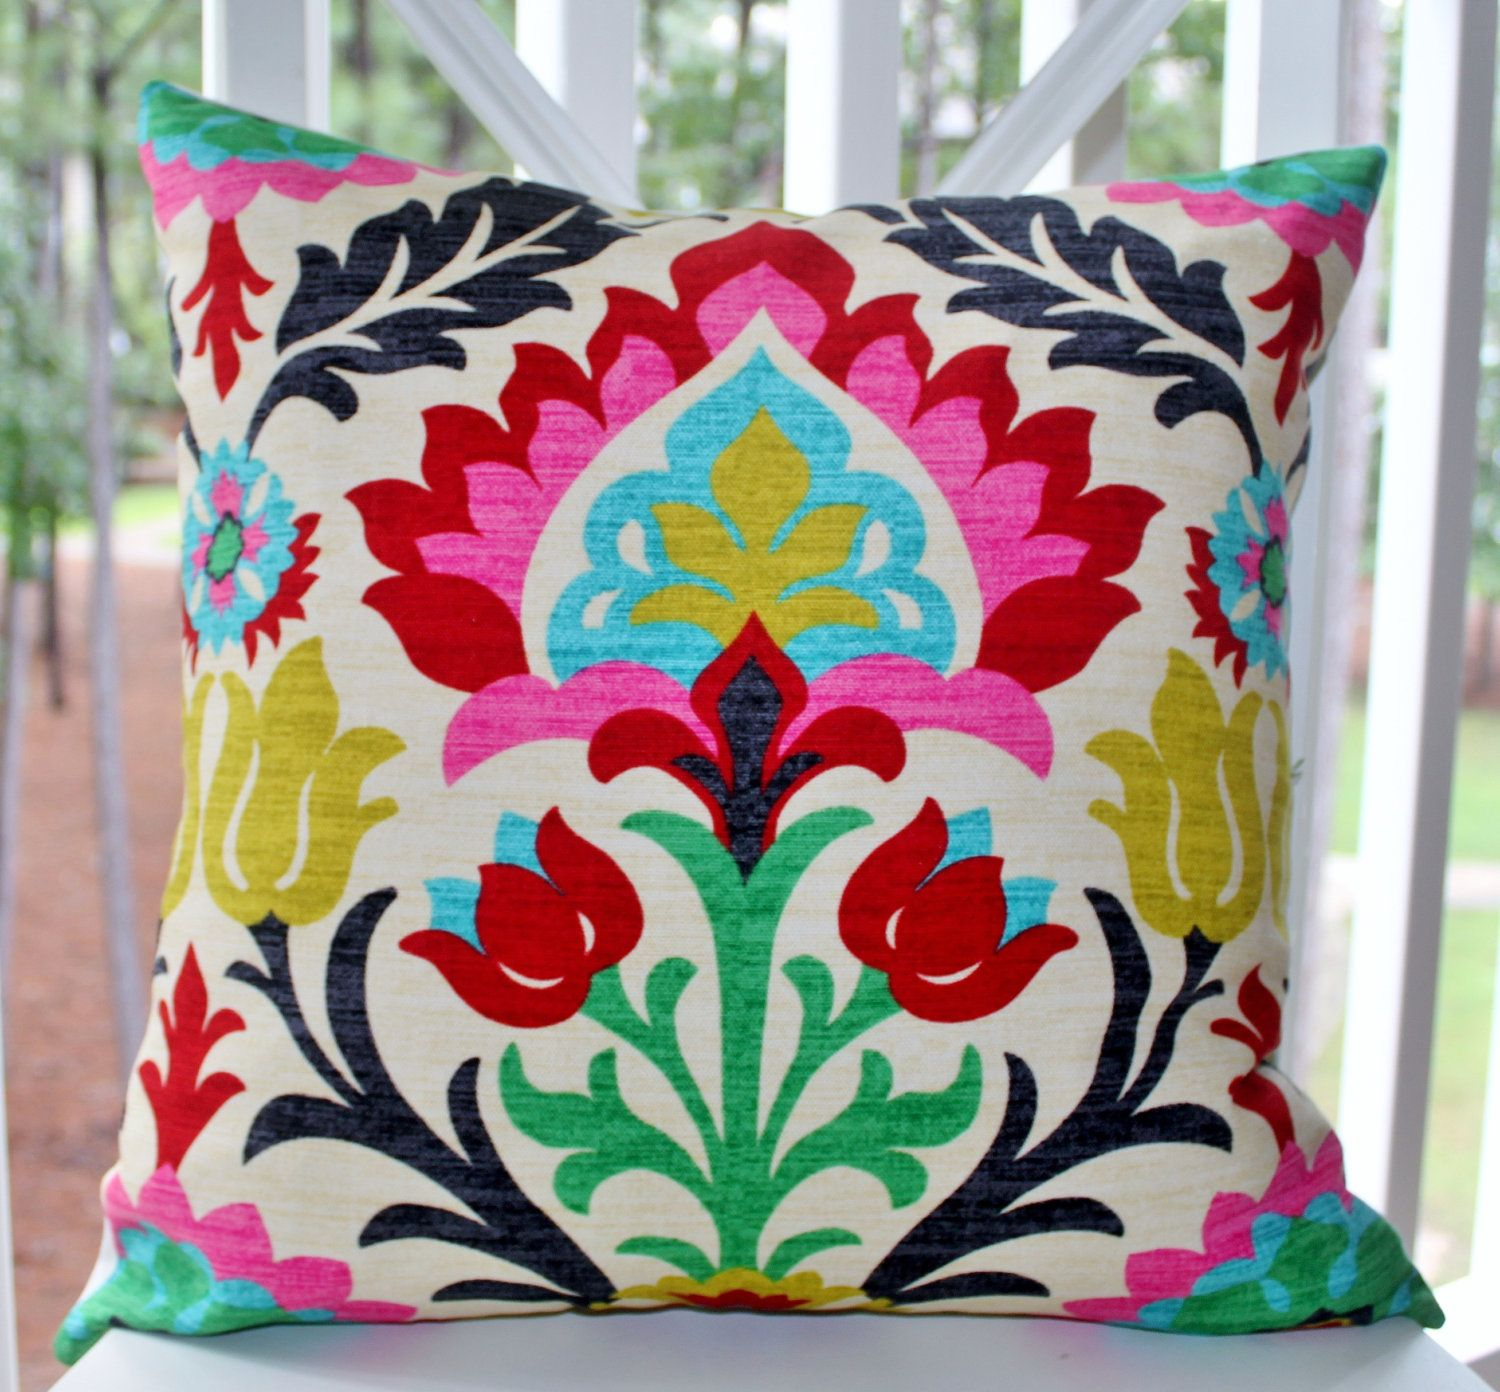 Decorative Pillow Cover - Desert Flower - Modern Red Pink Turquoise Pillow - Bright Color Throw ...